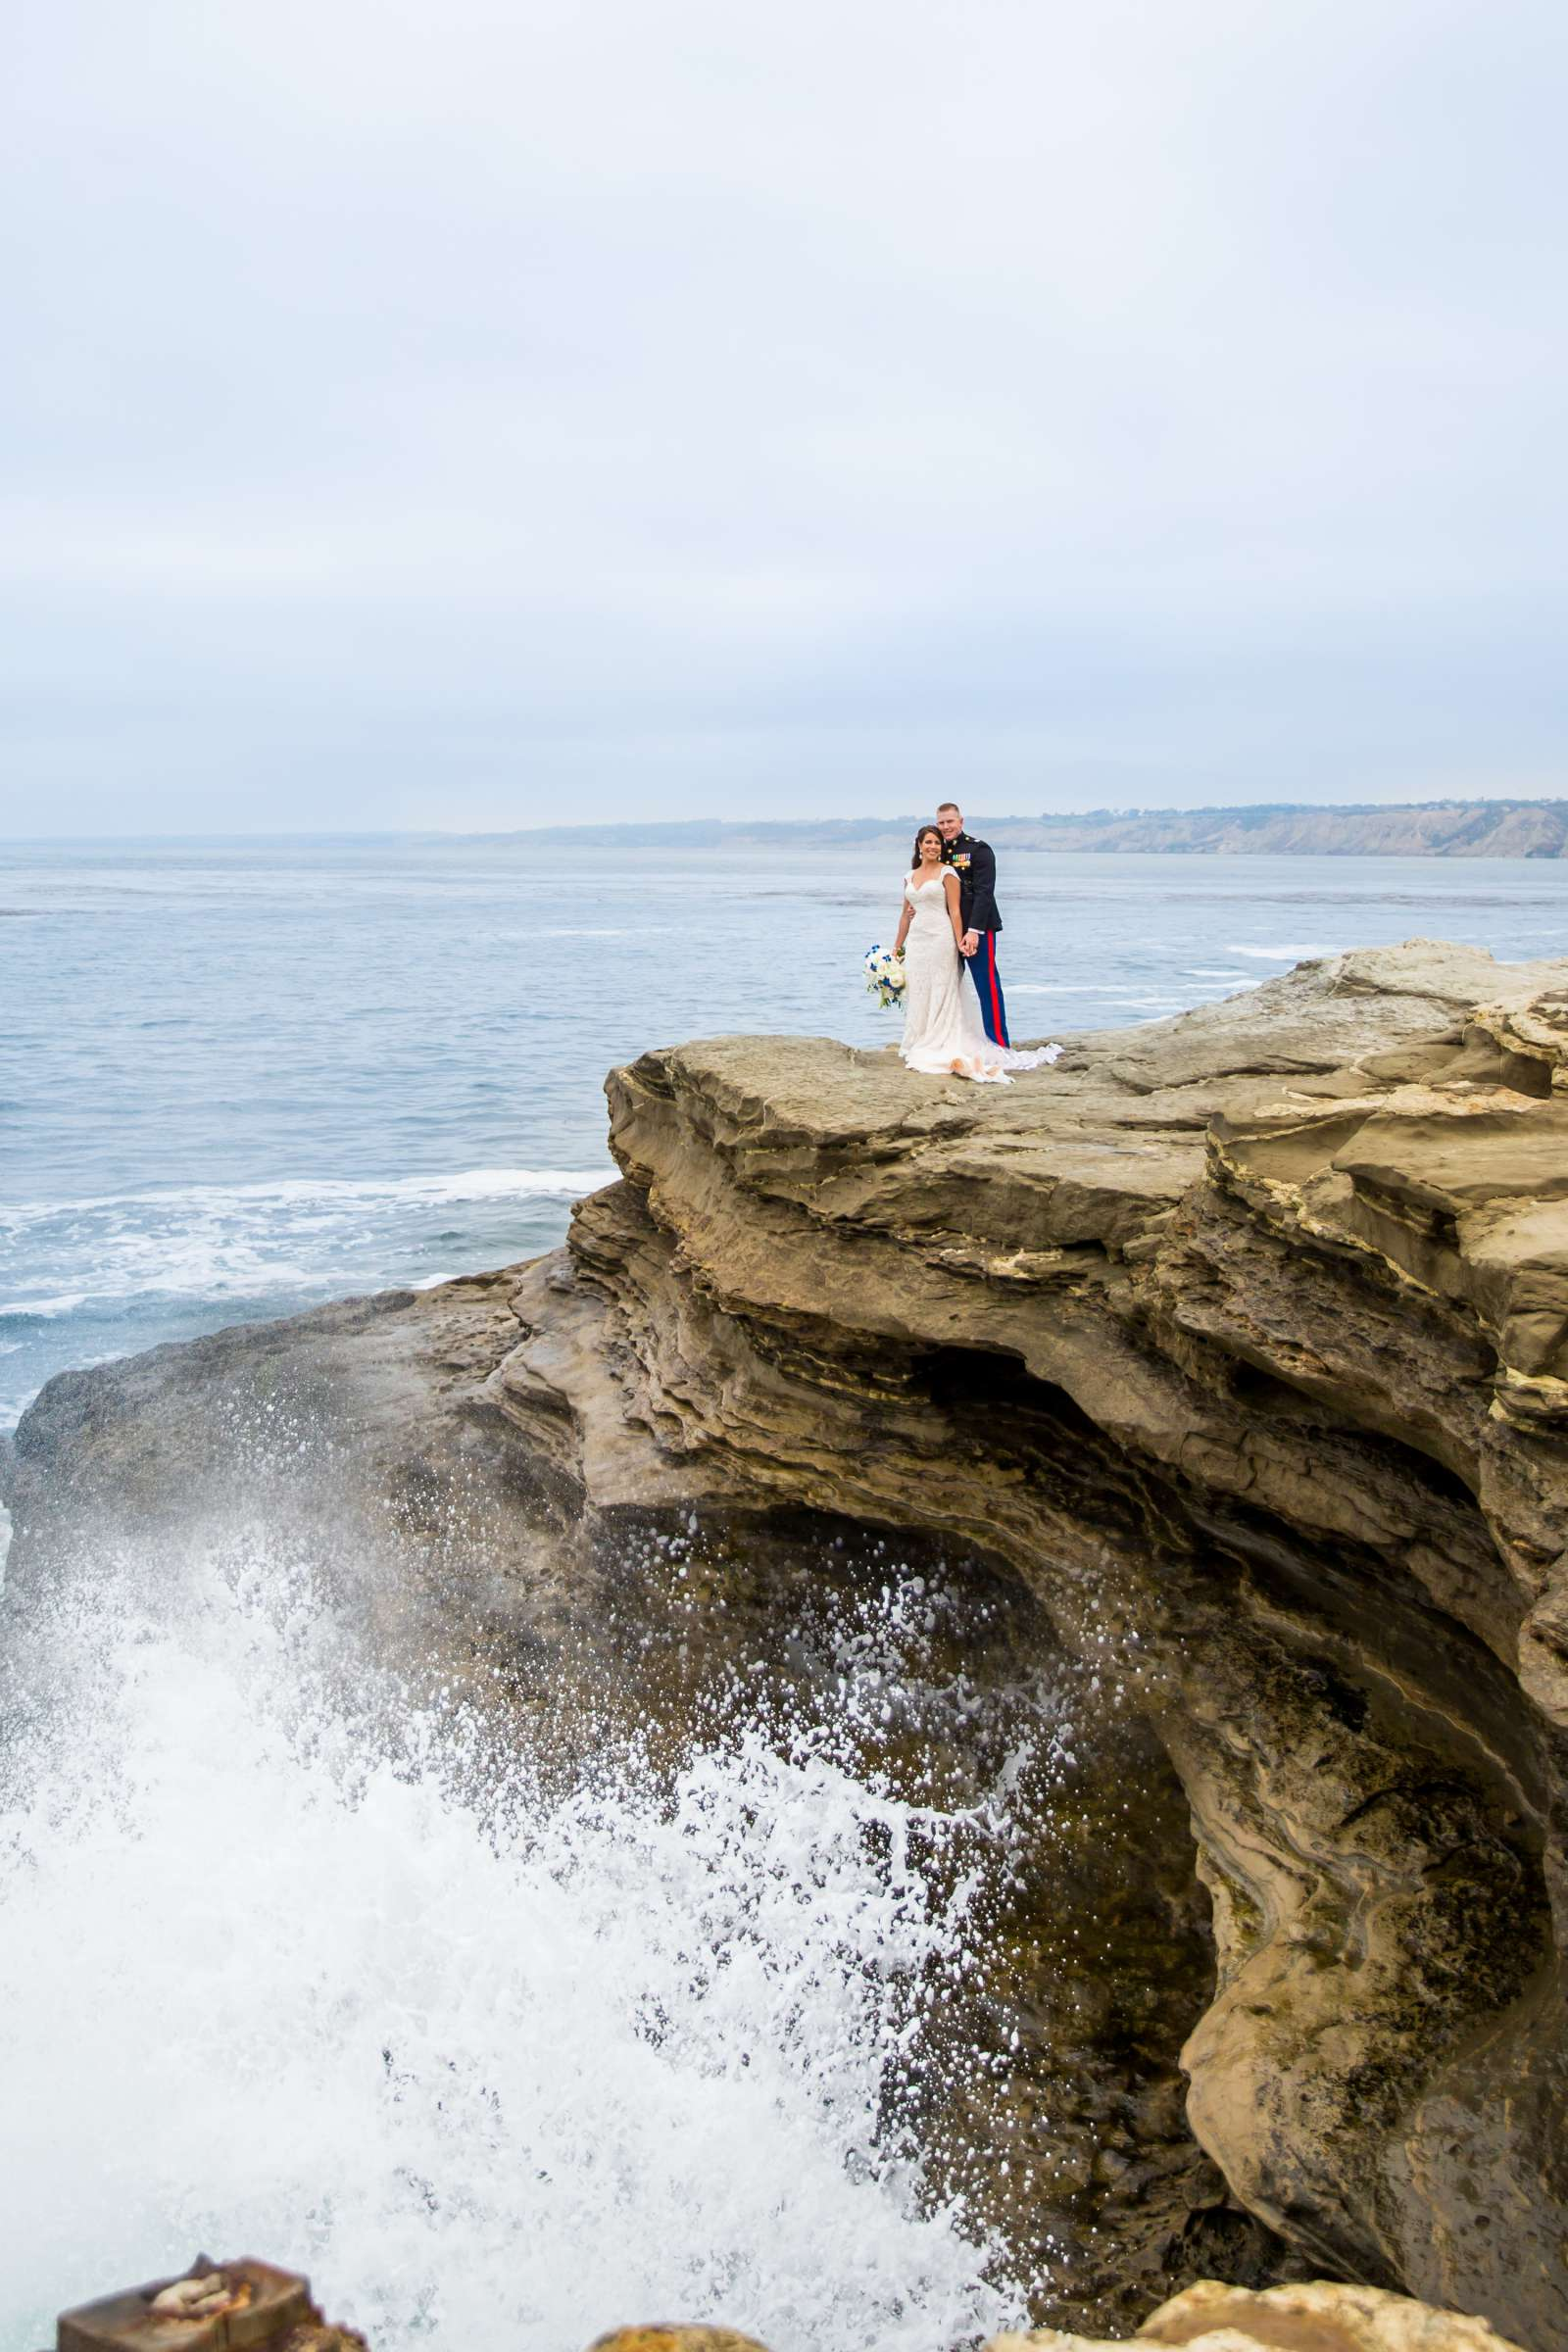 La Valencia Wedding coordinated by Per Sempre, Holly and Alan Wedding Photo #475877 by True Photography